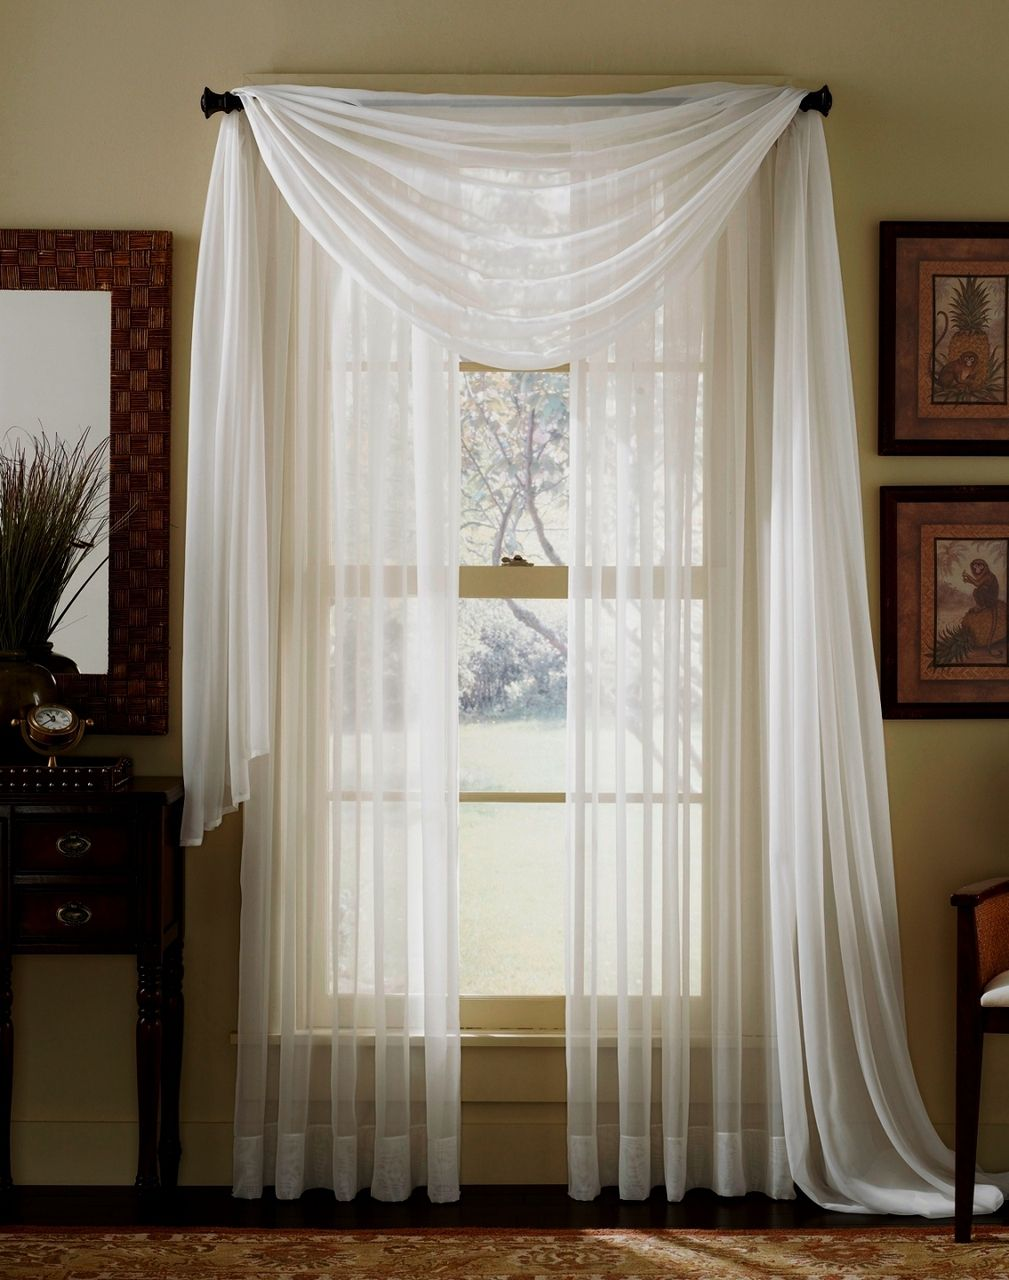 20 Anno Luv Panel Curtain Ikea With Images: White Paneling, White Sheer